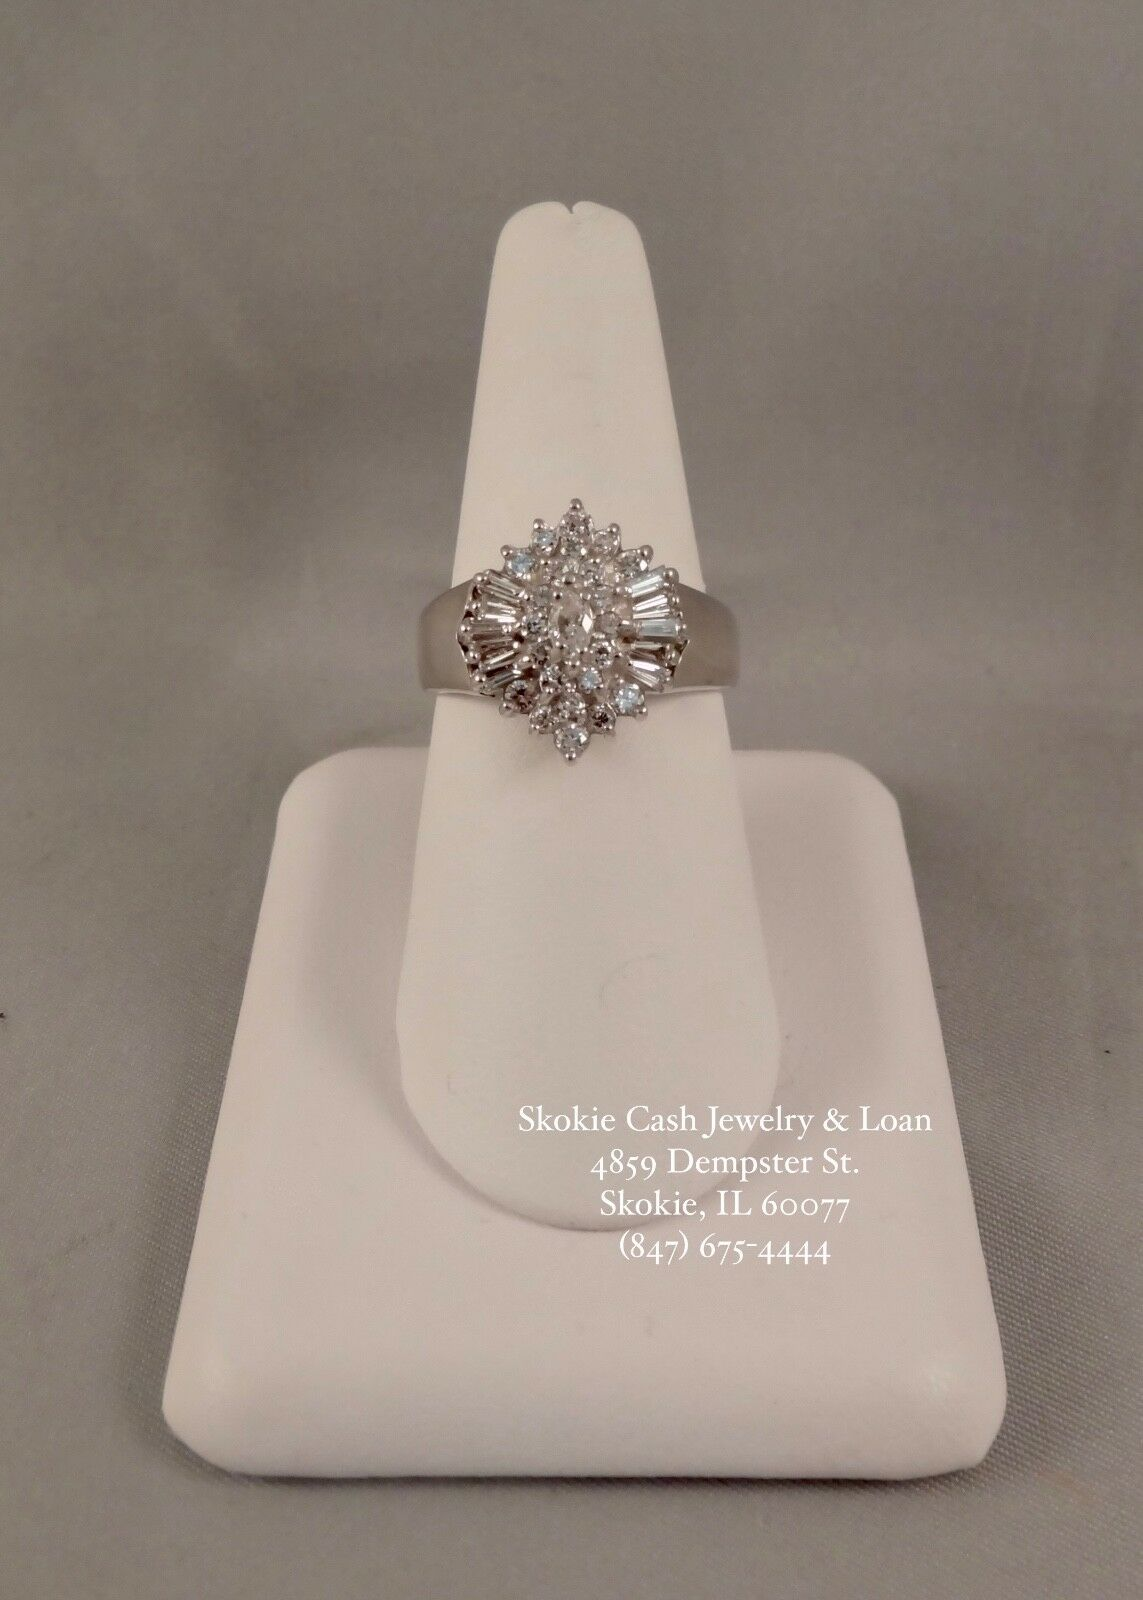 14kt White gold Diamond Ring - 2cts FLAWLESS DIAMONDS